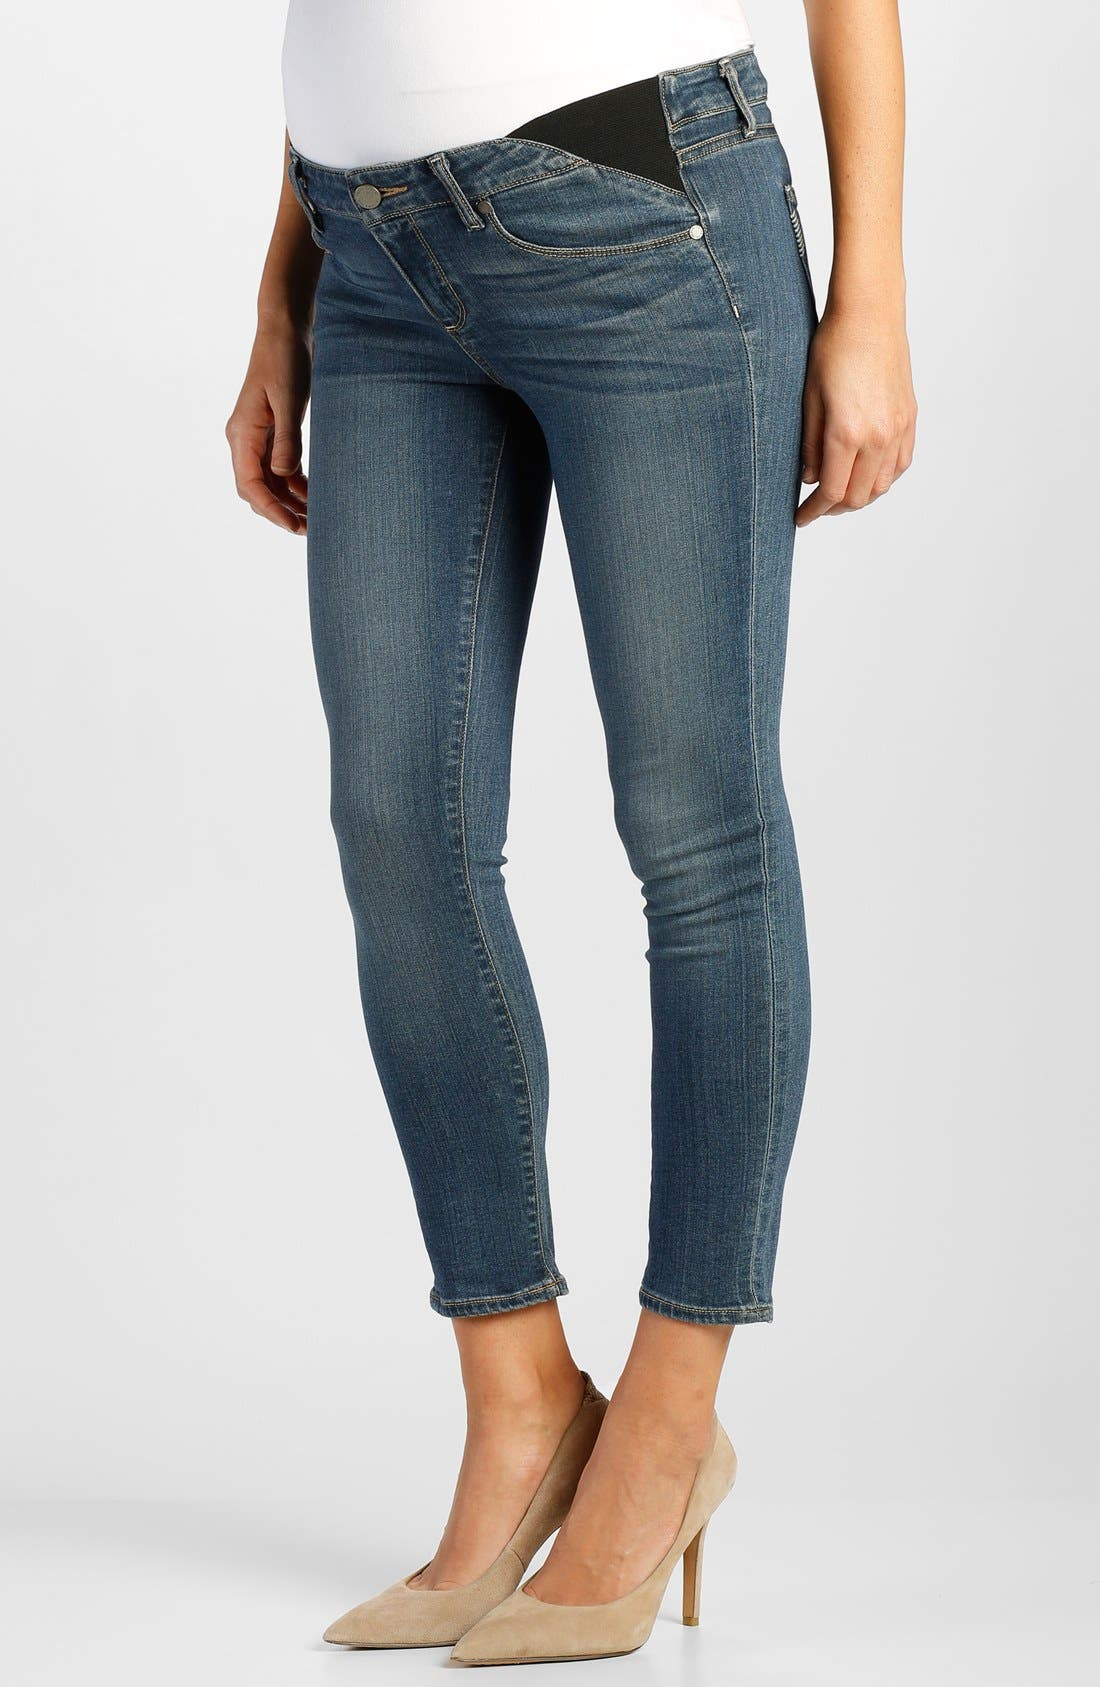 Alternate Image 1 Selected - Paige Denim 'Verdugo' Maternity Skinny Jeans with Side Gussets (Tristan Blue)